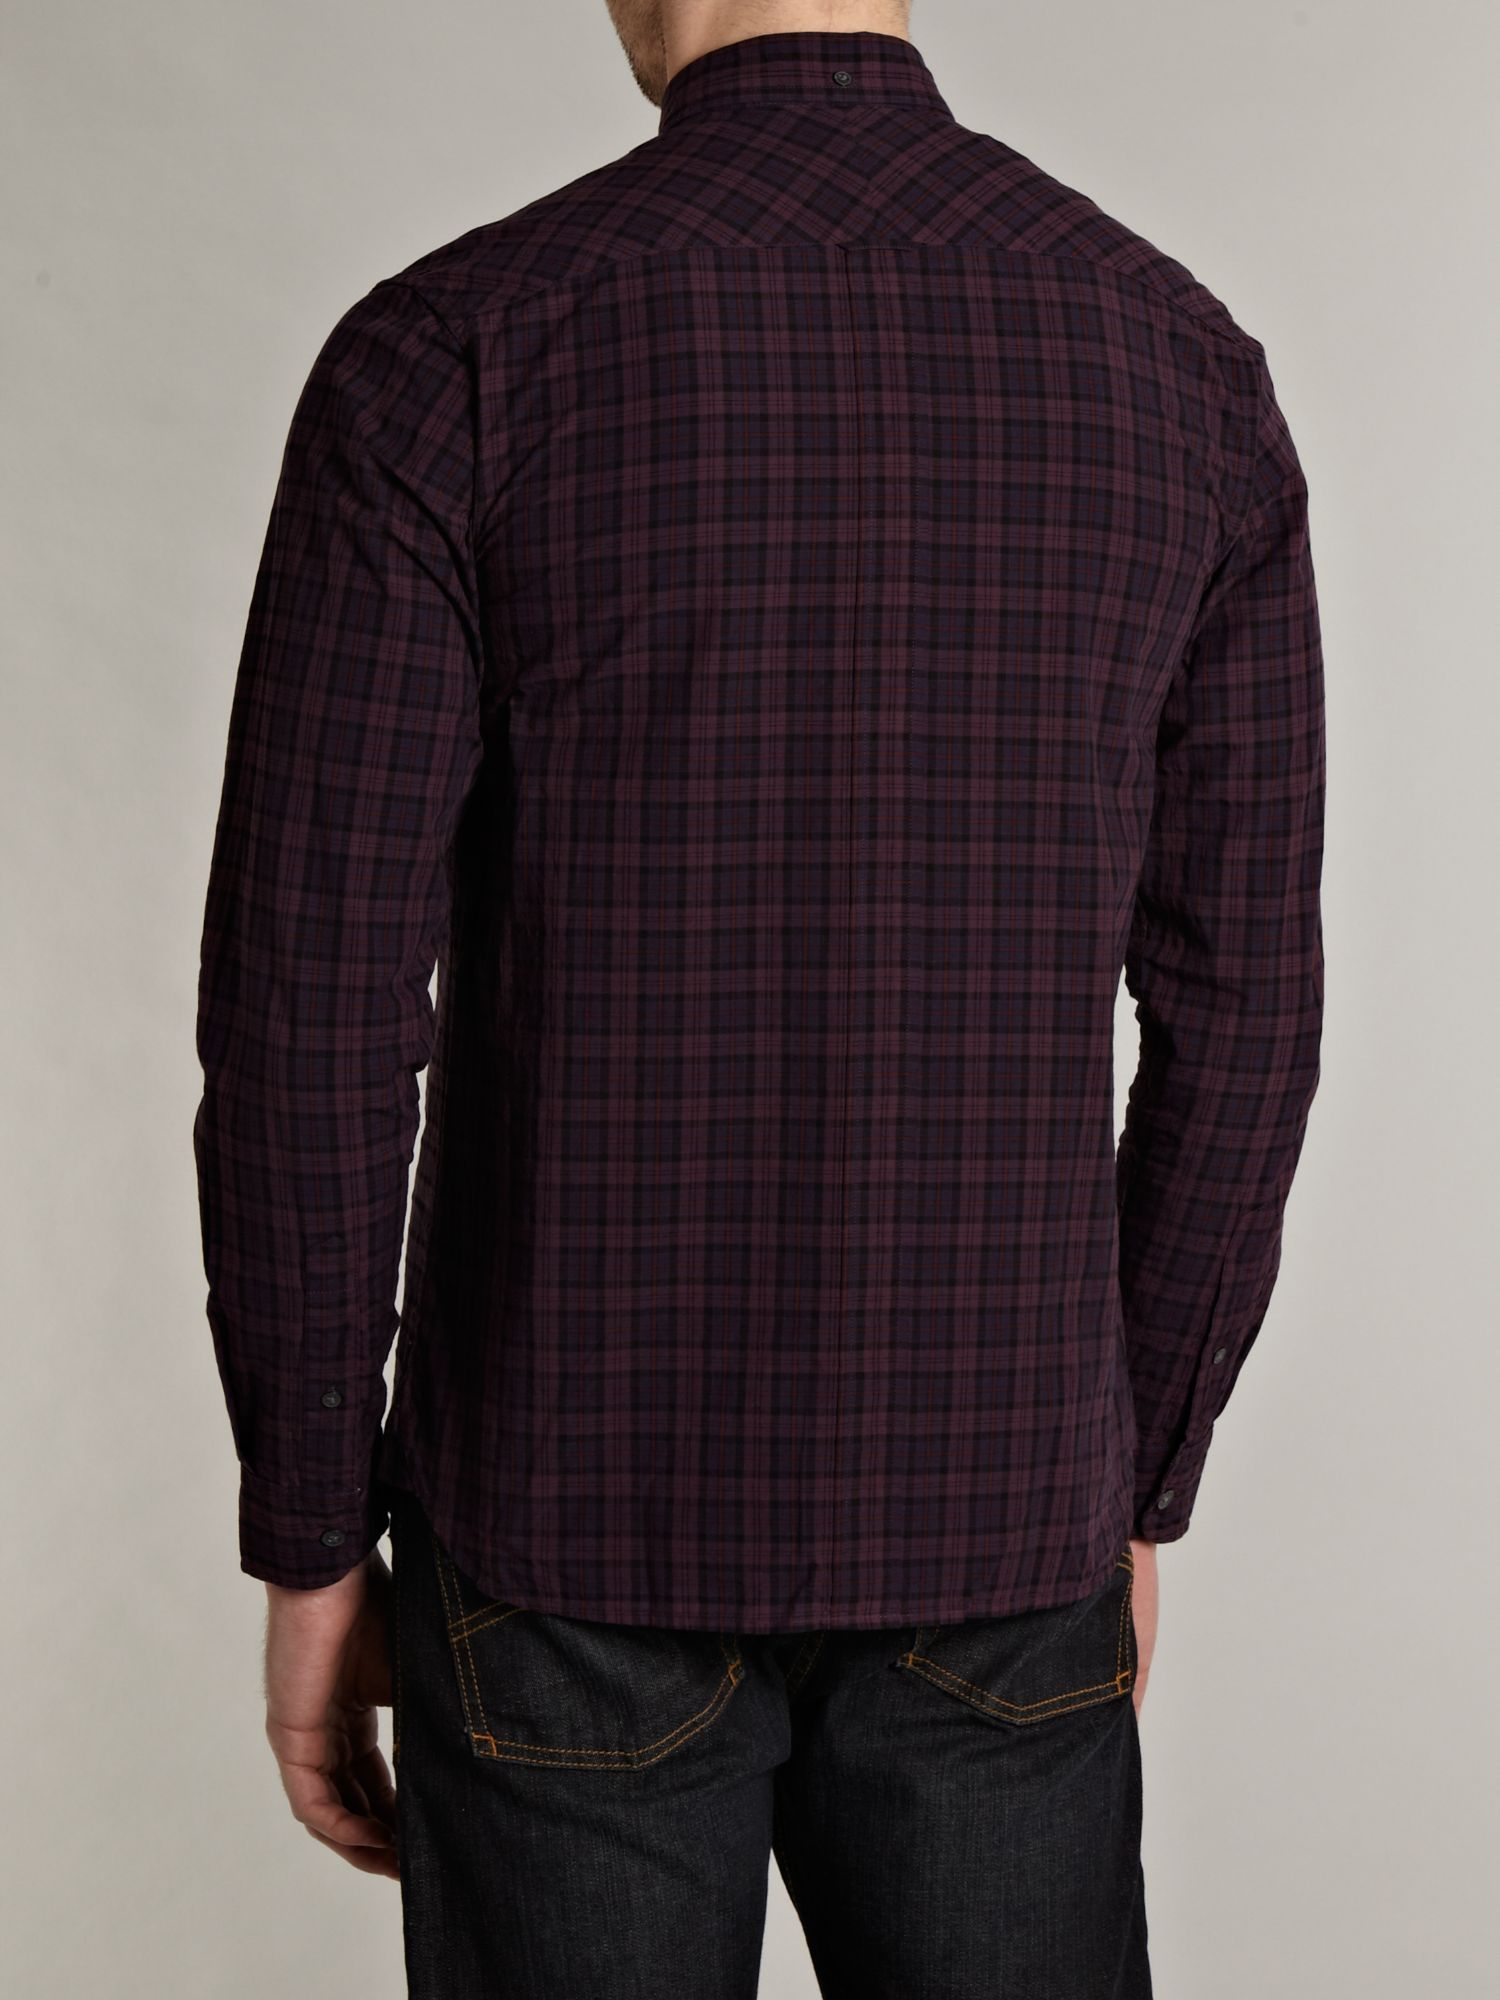 Lyst fred perry long sleeved overdyed tartan shirt in for Fred perry mens shirts sale